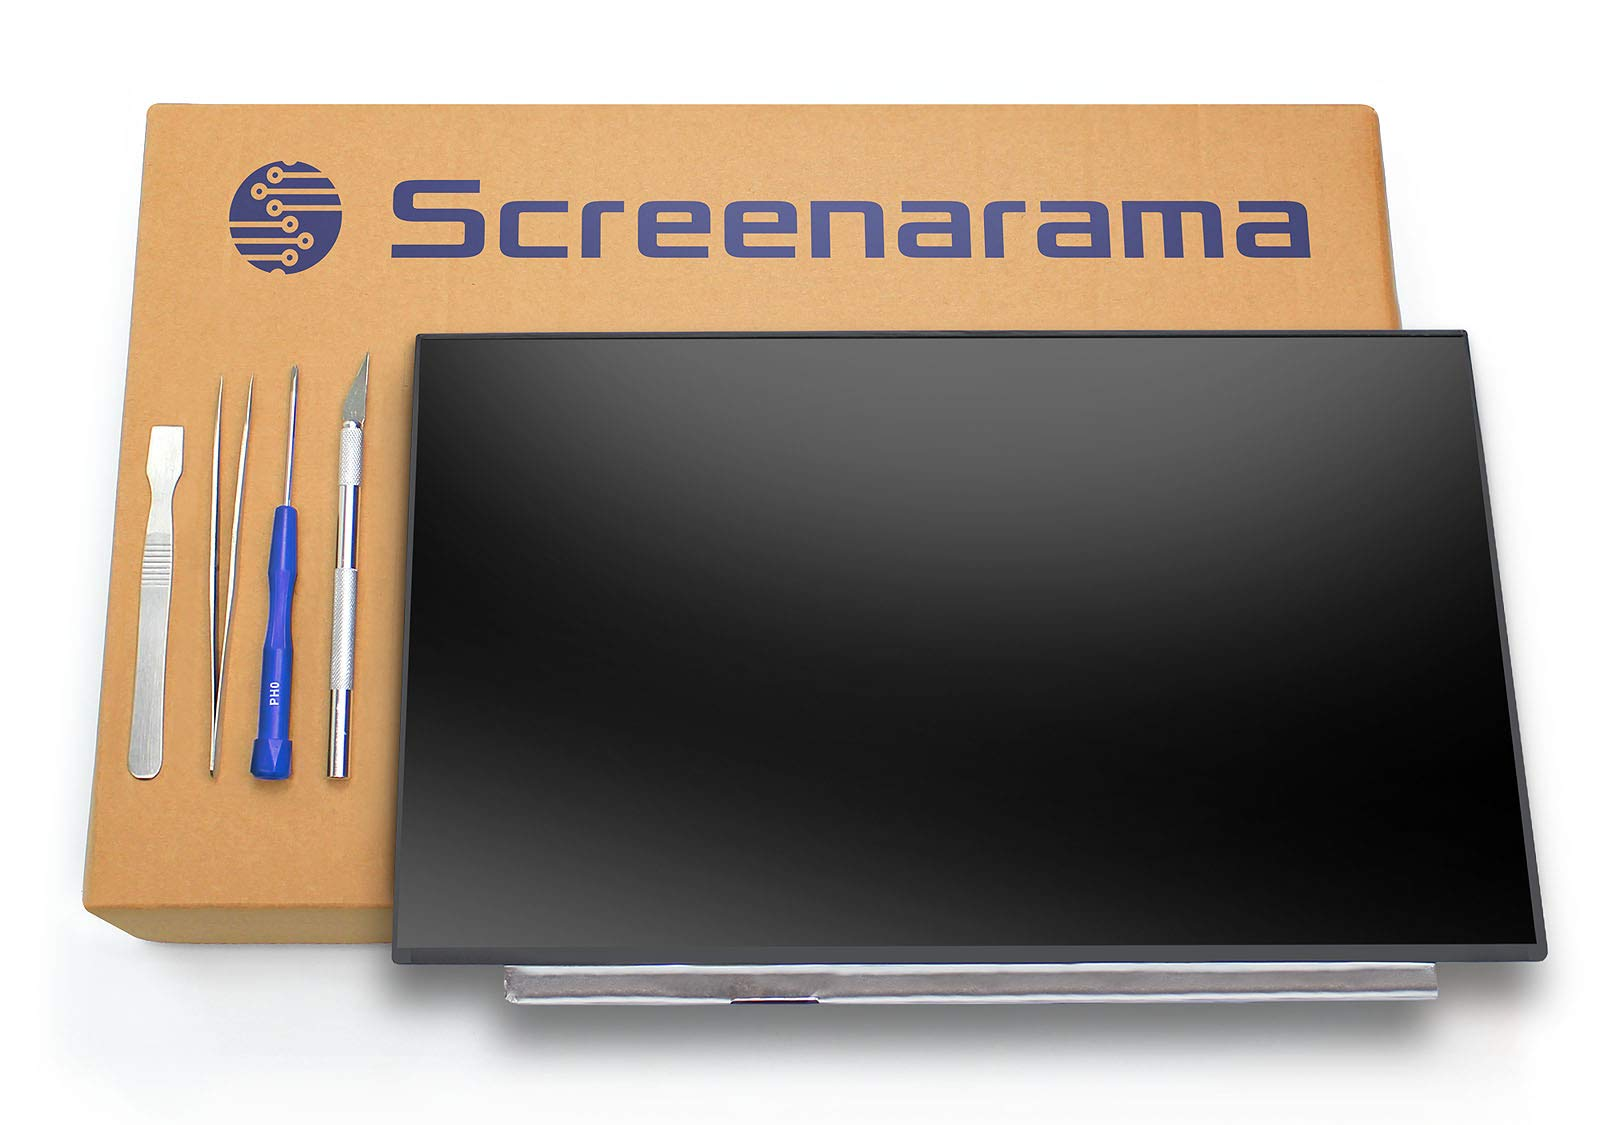 HD 1366x768 LCD LED Display with Tools OnCell Touch SCREENARAMA New Screen Replacement for Lenovo Ideapad L340-15API